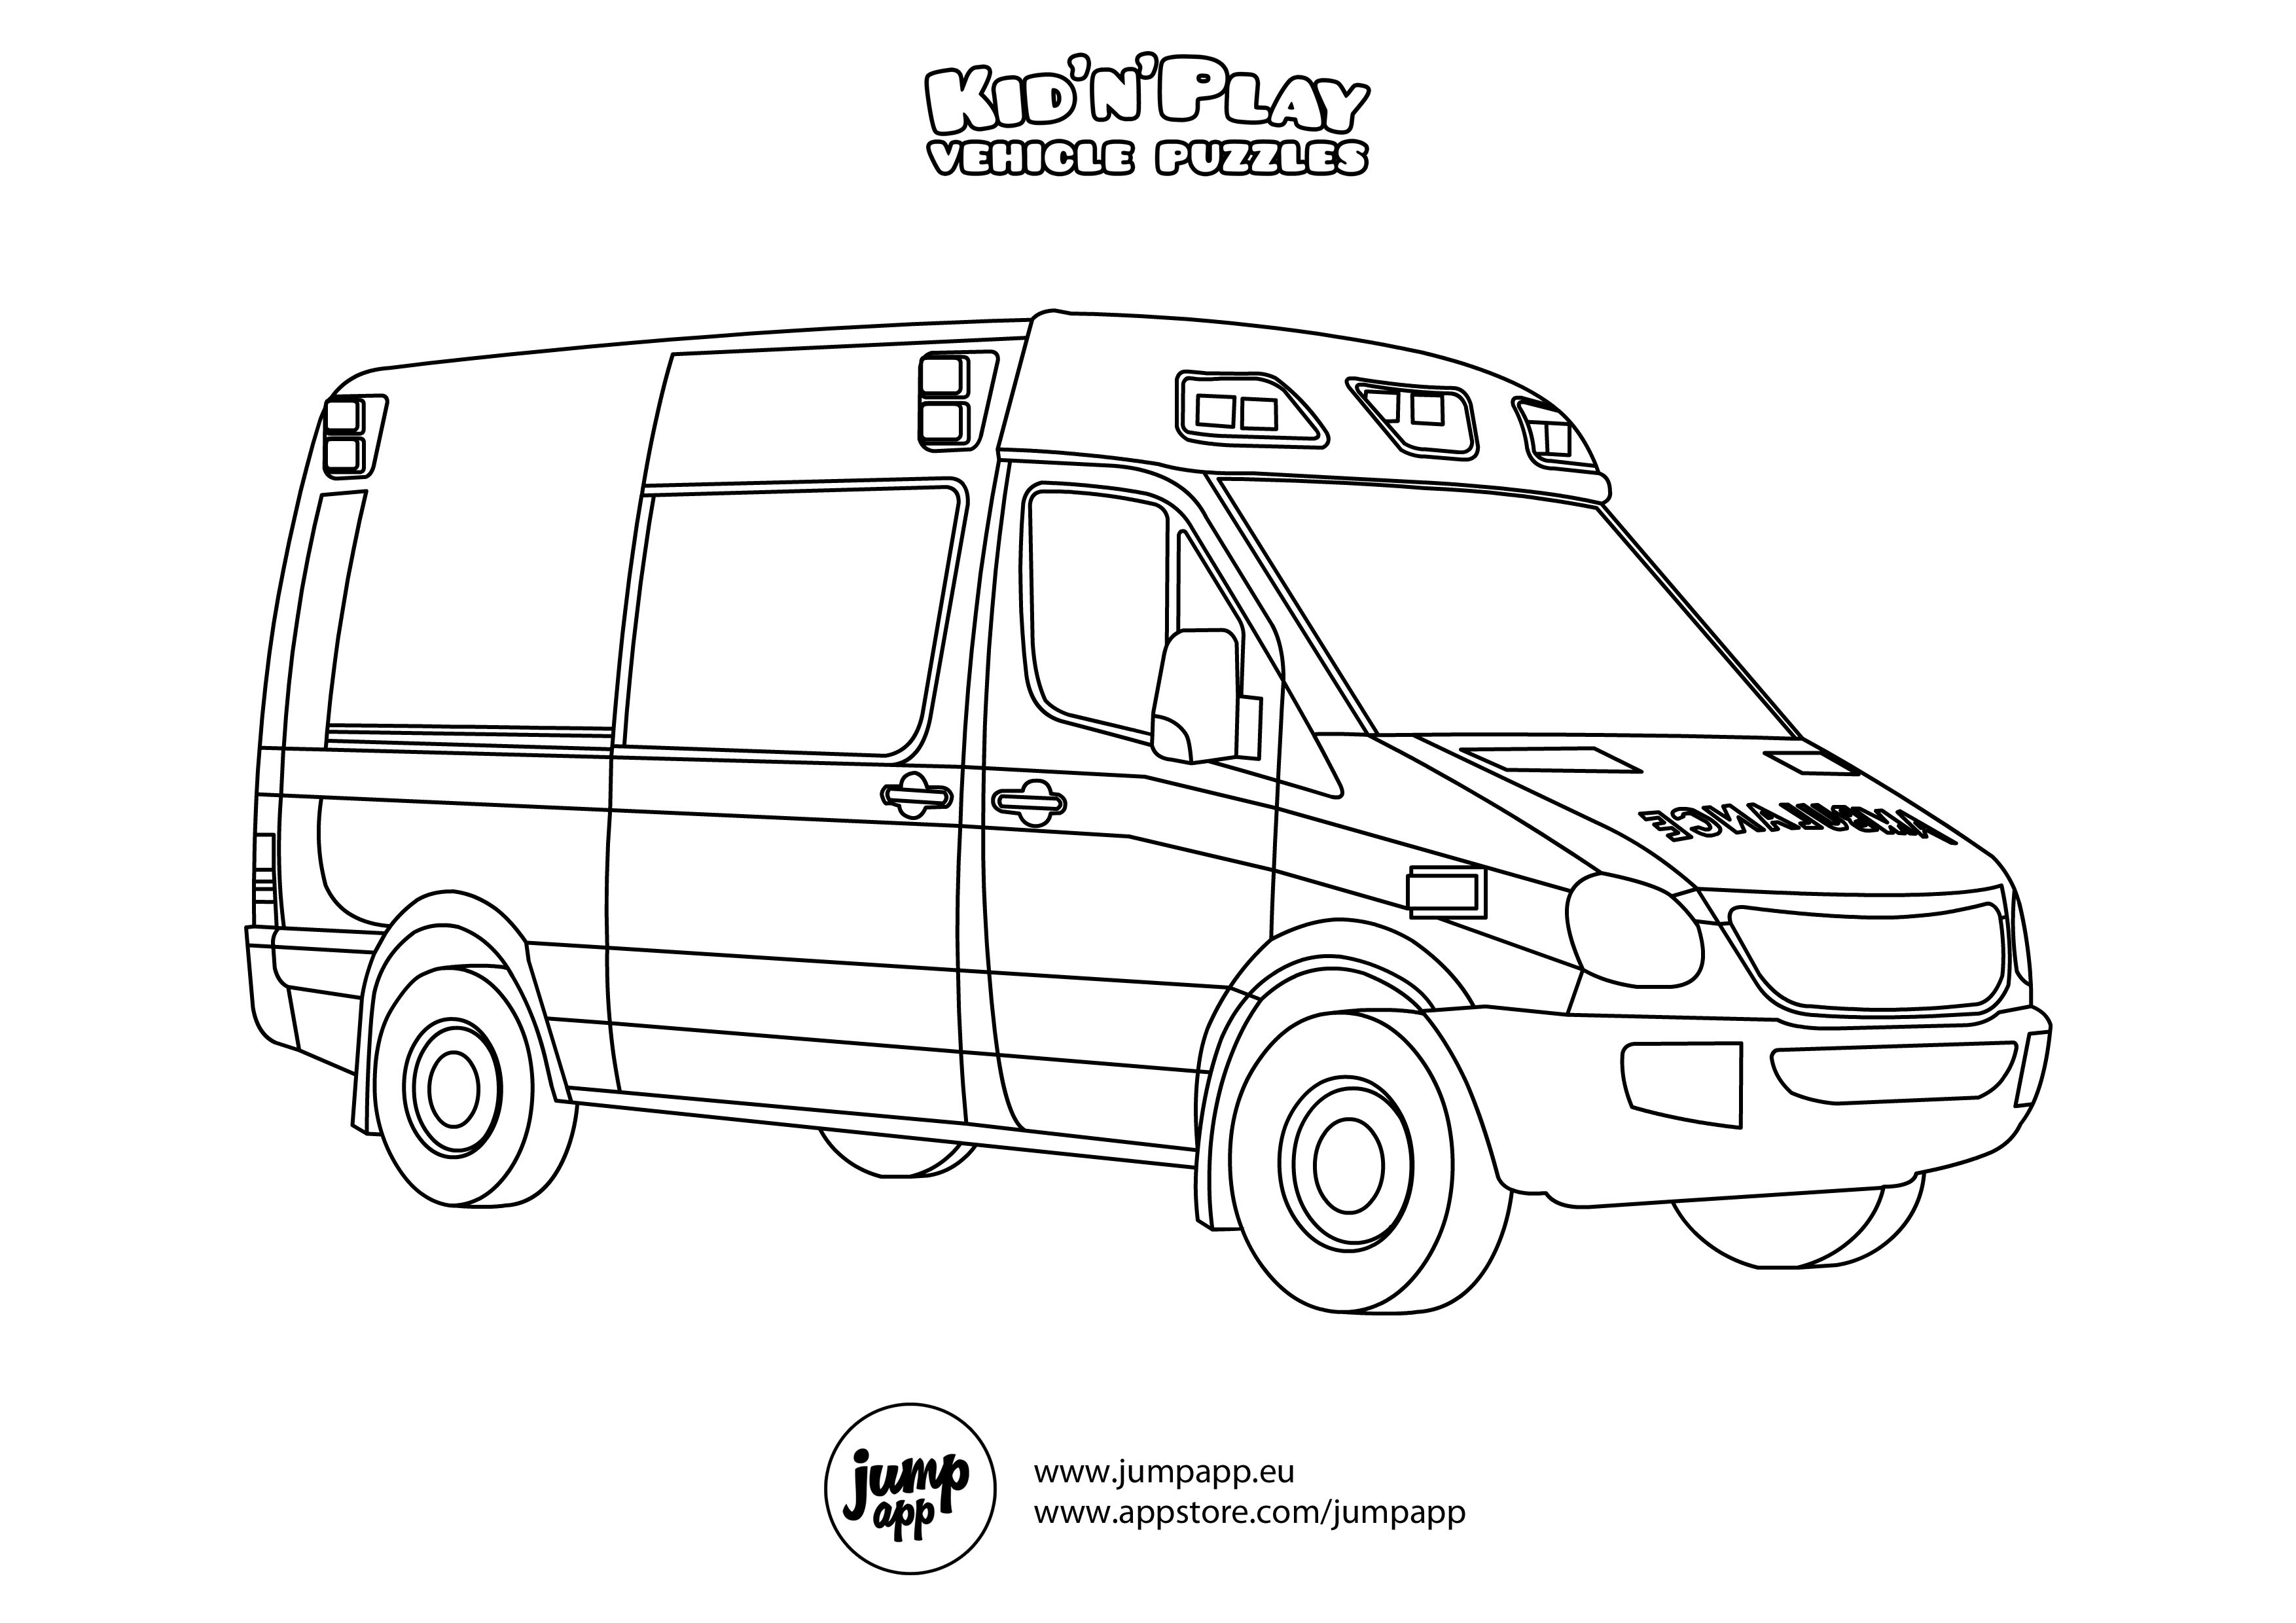 Ambulance Printable Coloring Pages Pinterest Ambulance Colouring Pages